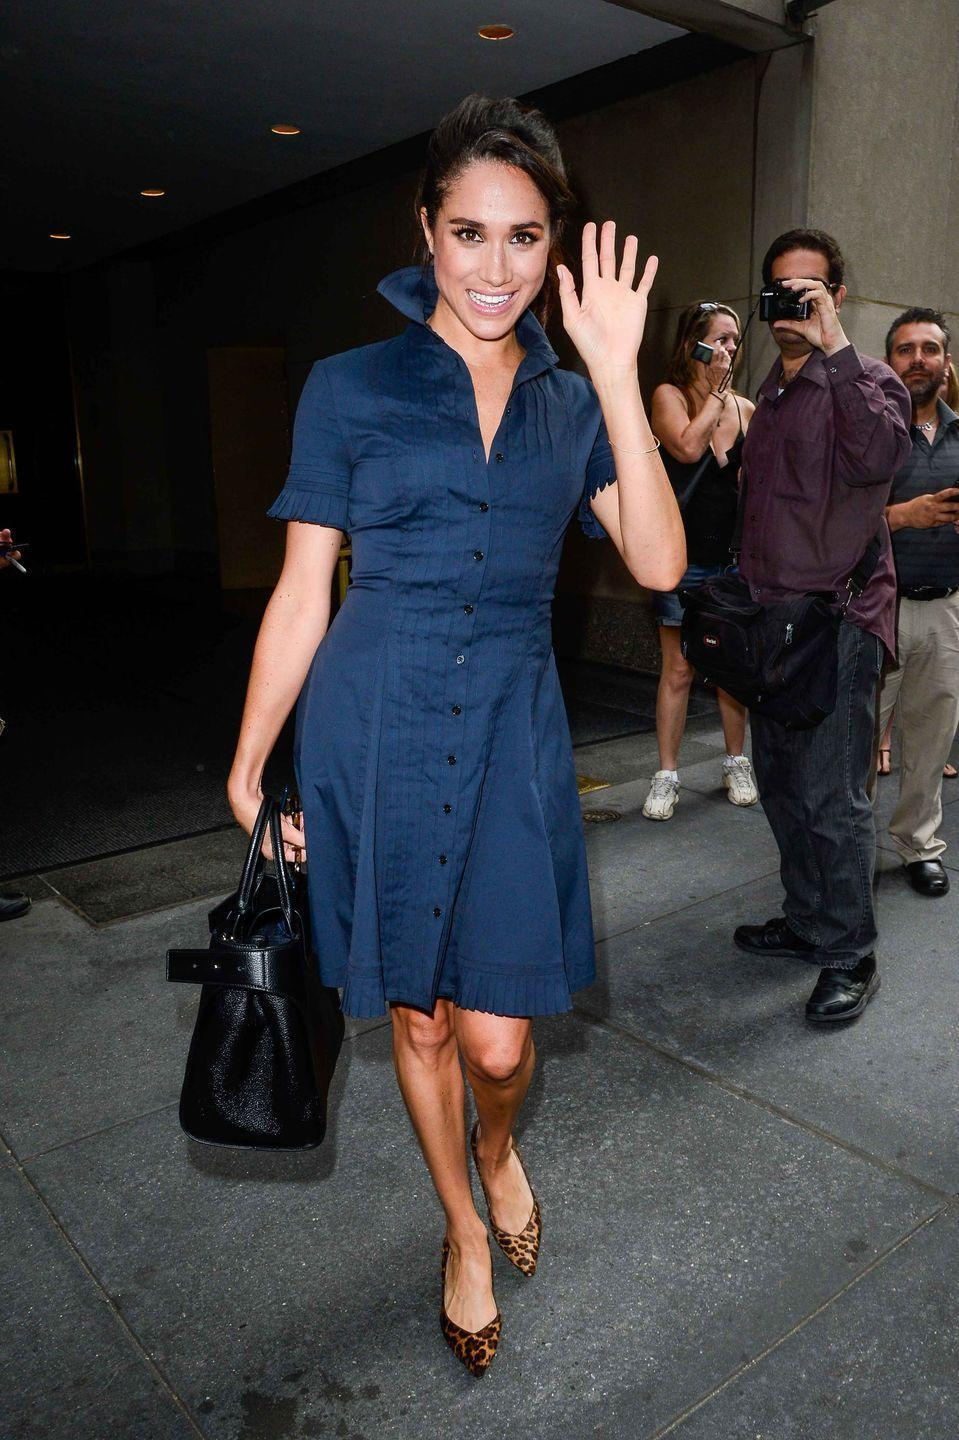 "<p>She looks polished in a classic navy dress with <a href=""https://www.sarahflint.com/products/emma-chocolate-leopard?variant=37841859521"" rel=""nofollow noopener"" target=""_blank"" data-ylk=""slk:leopard print pumps from Sarah Flint"" class=""link rapid-noclick-resp"">leopard print pumps from Sarah Flint</a>.</p>"